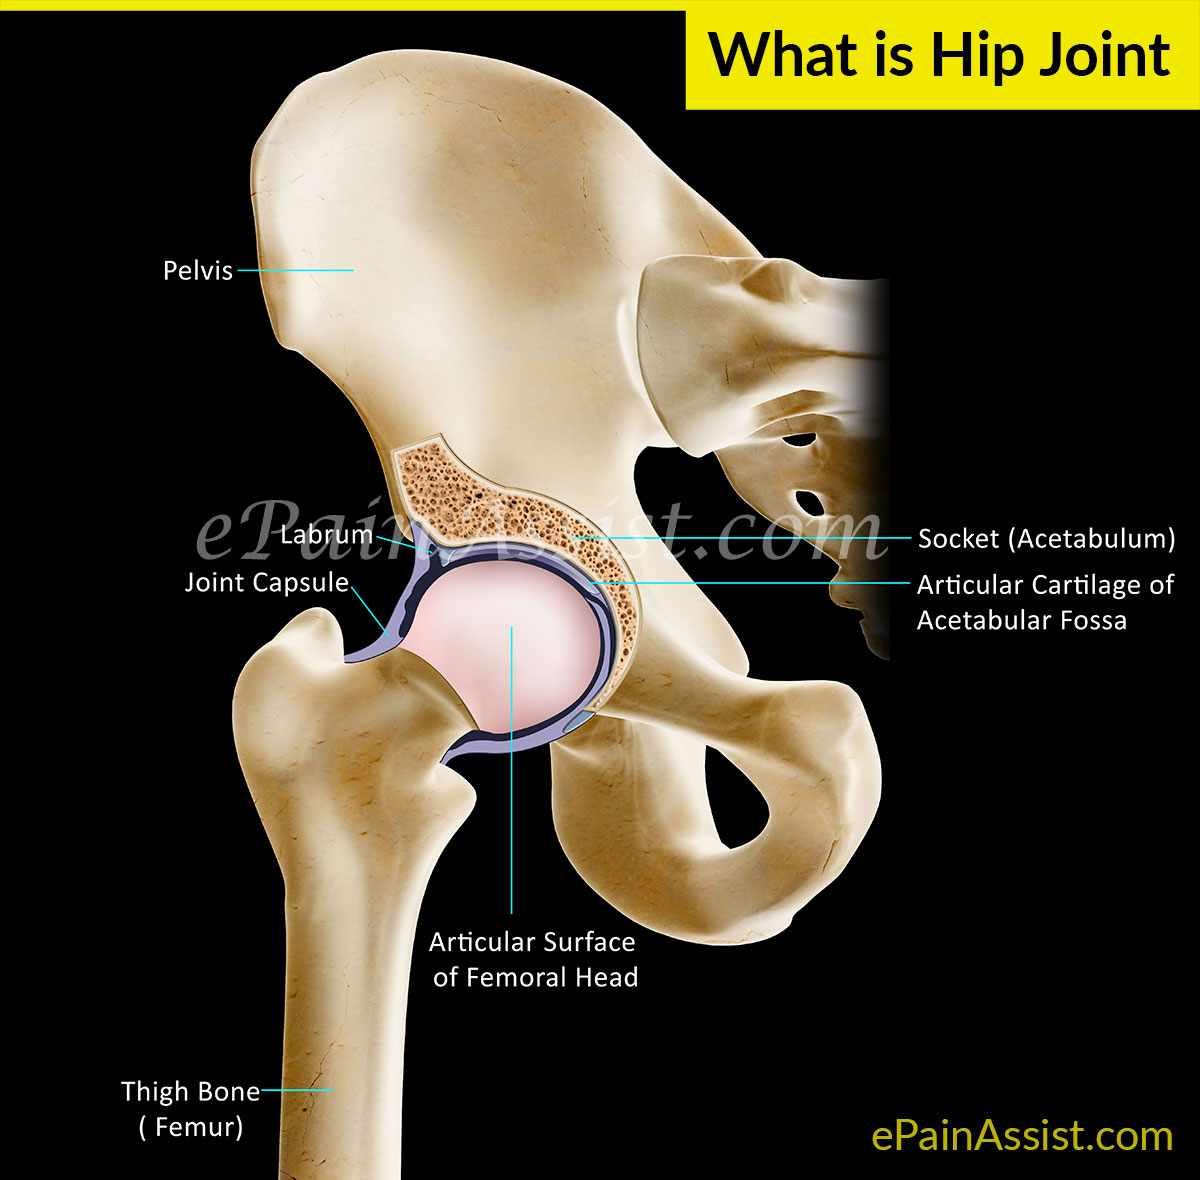 What Causes Hip Joint Pain or Acetabulofemoral Joint Pain?